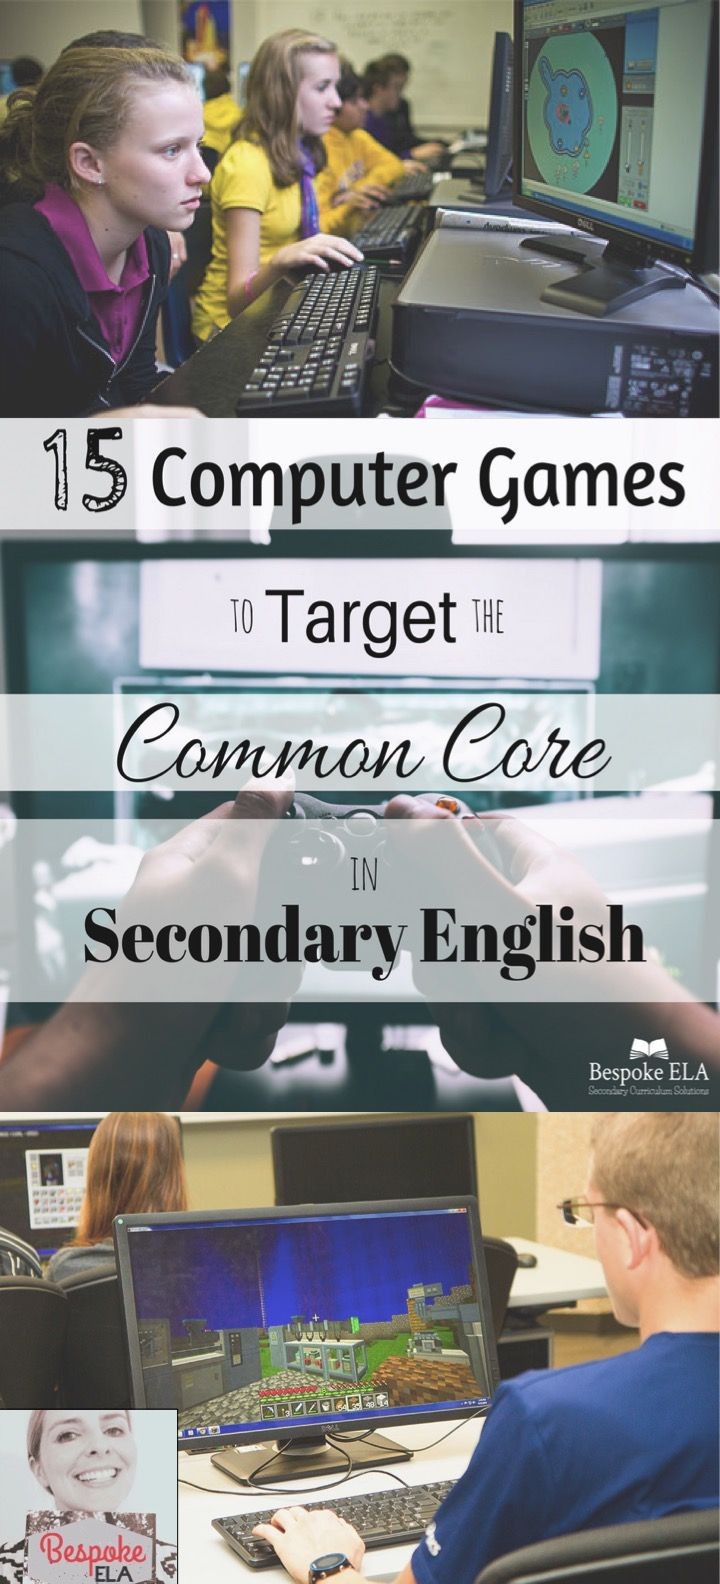 In this blog article from Bespoke ELA, you will find a list of 15 computer games that target Common Core skills in secondary English Language Arts for grades 6-12. This blog also discusses the criteria for selecting high quality games and a rationale for using them to assess student learning in the classroom.